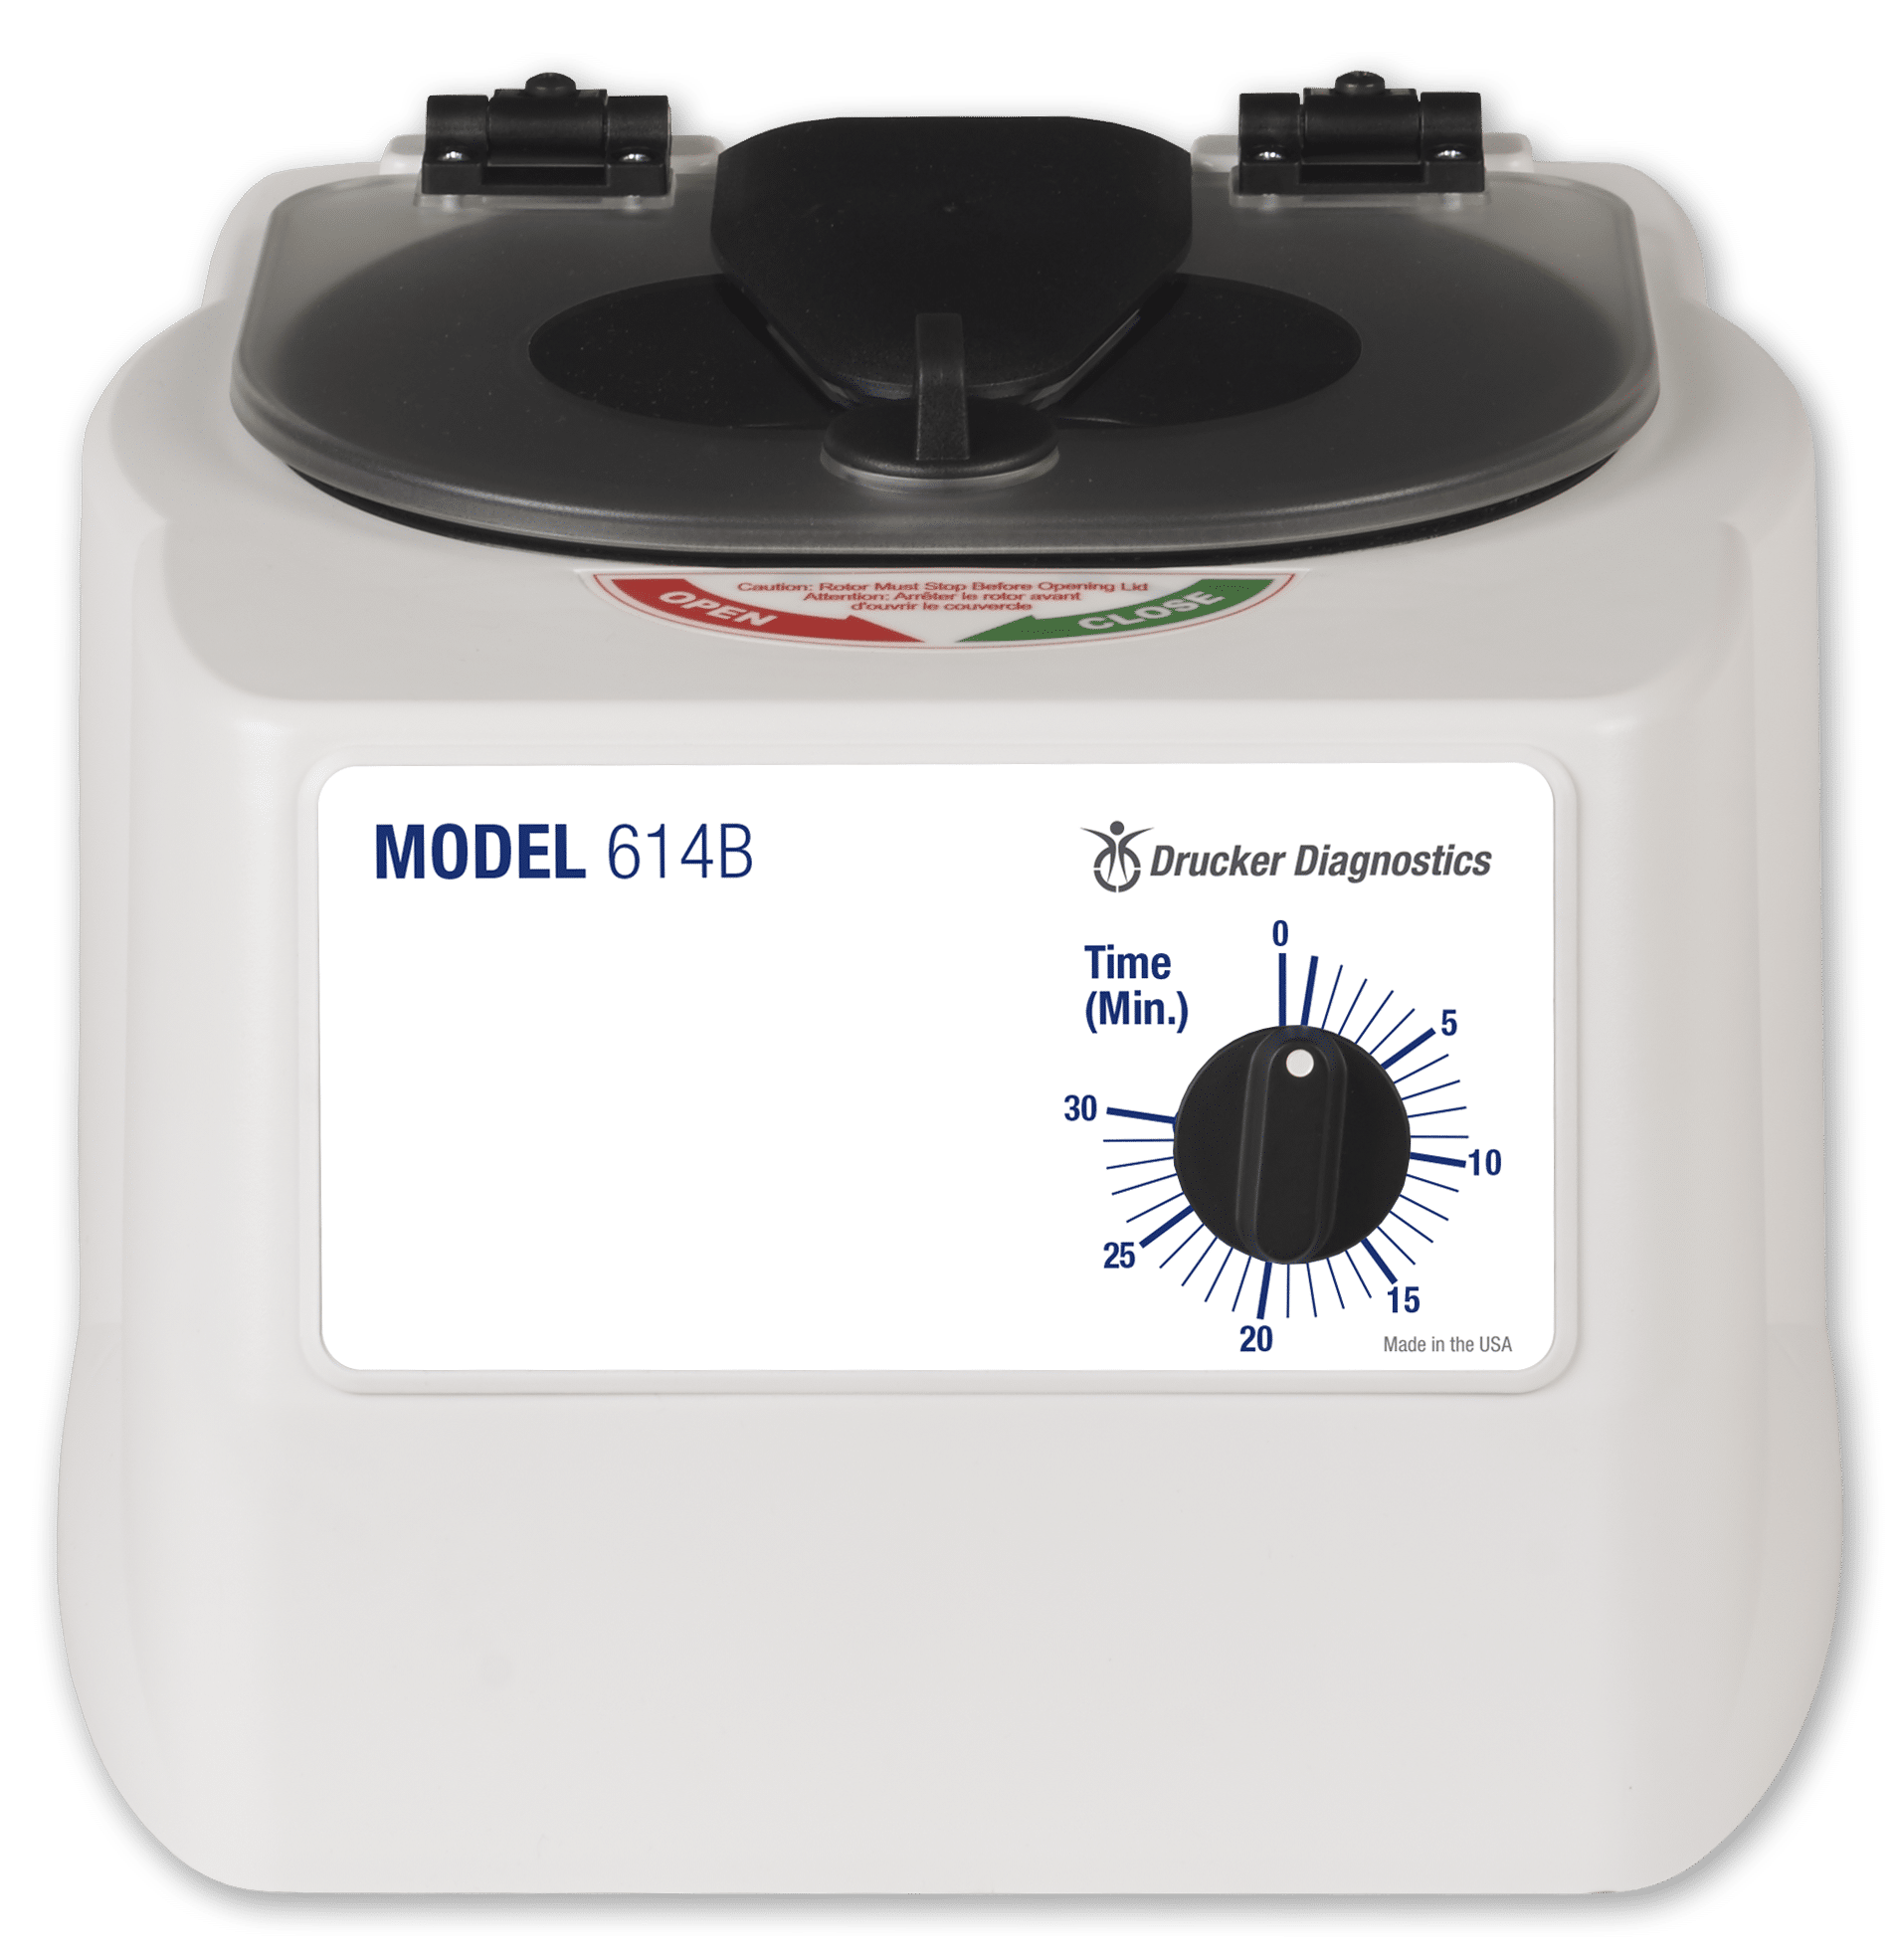 Model 614B Centrifuge Front View of White Product, Drucker Diagnostics, Made in the USA